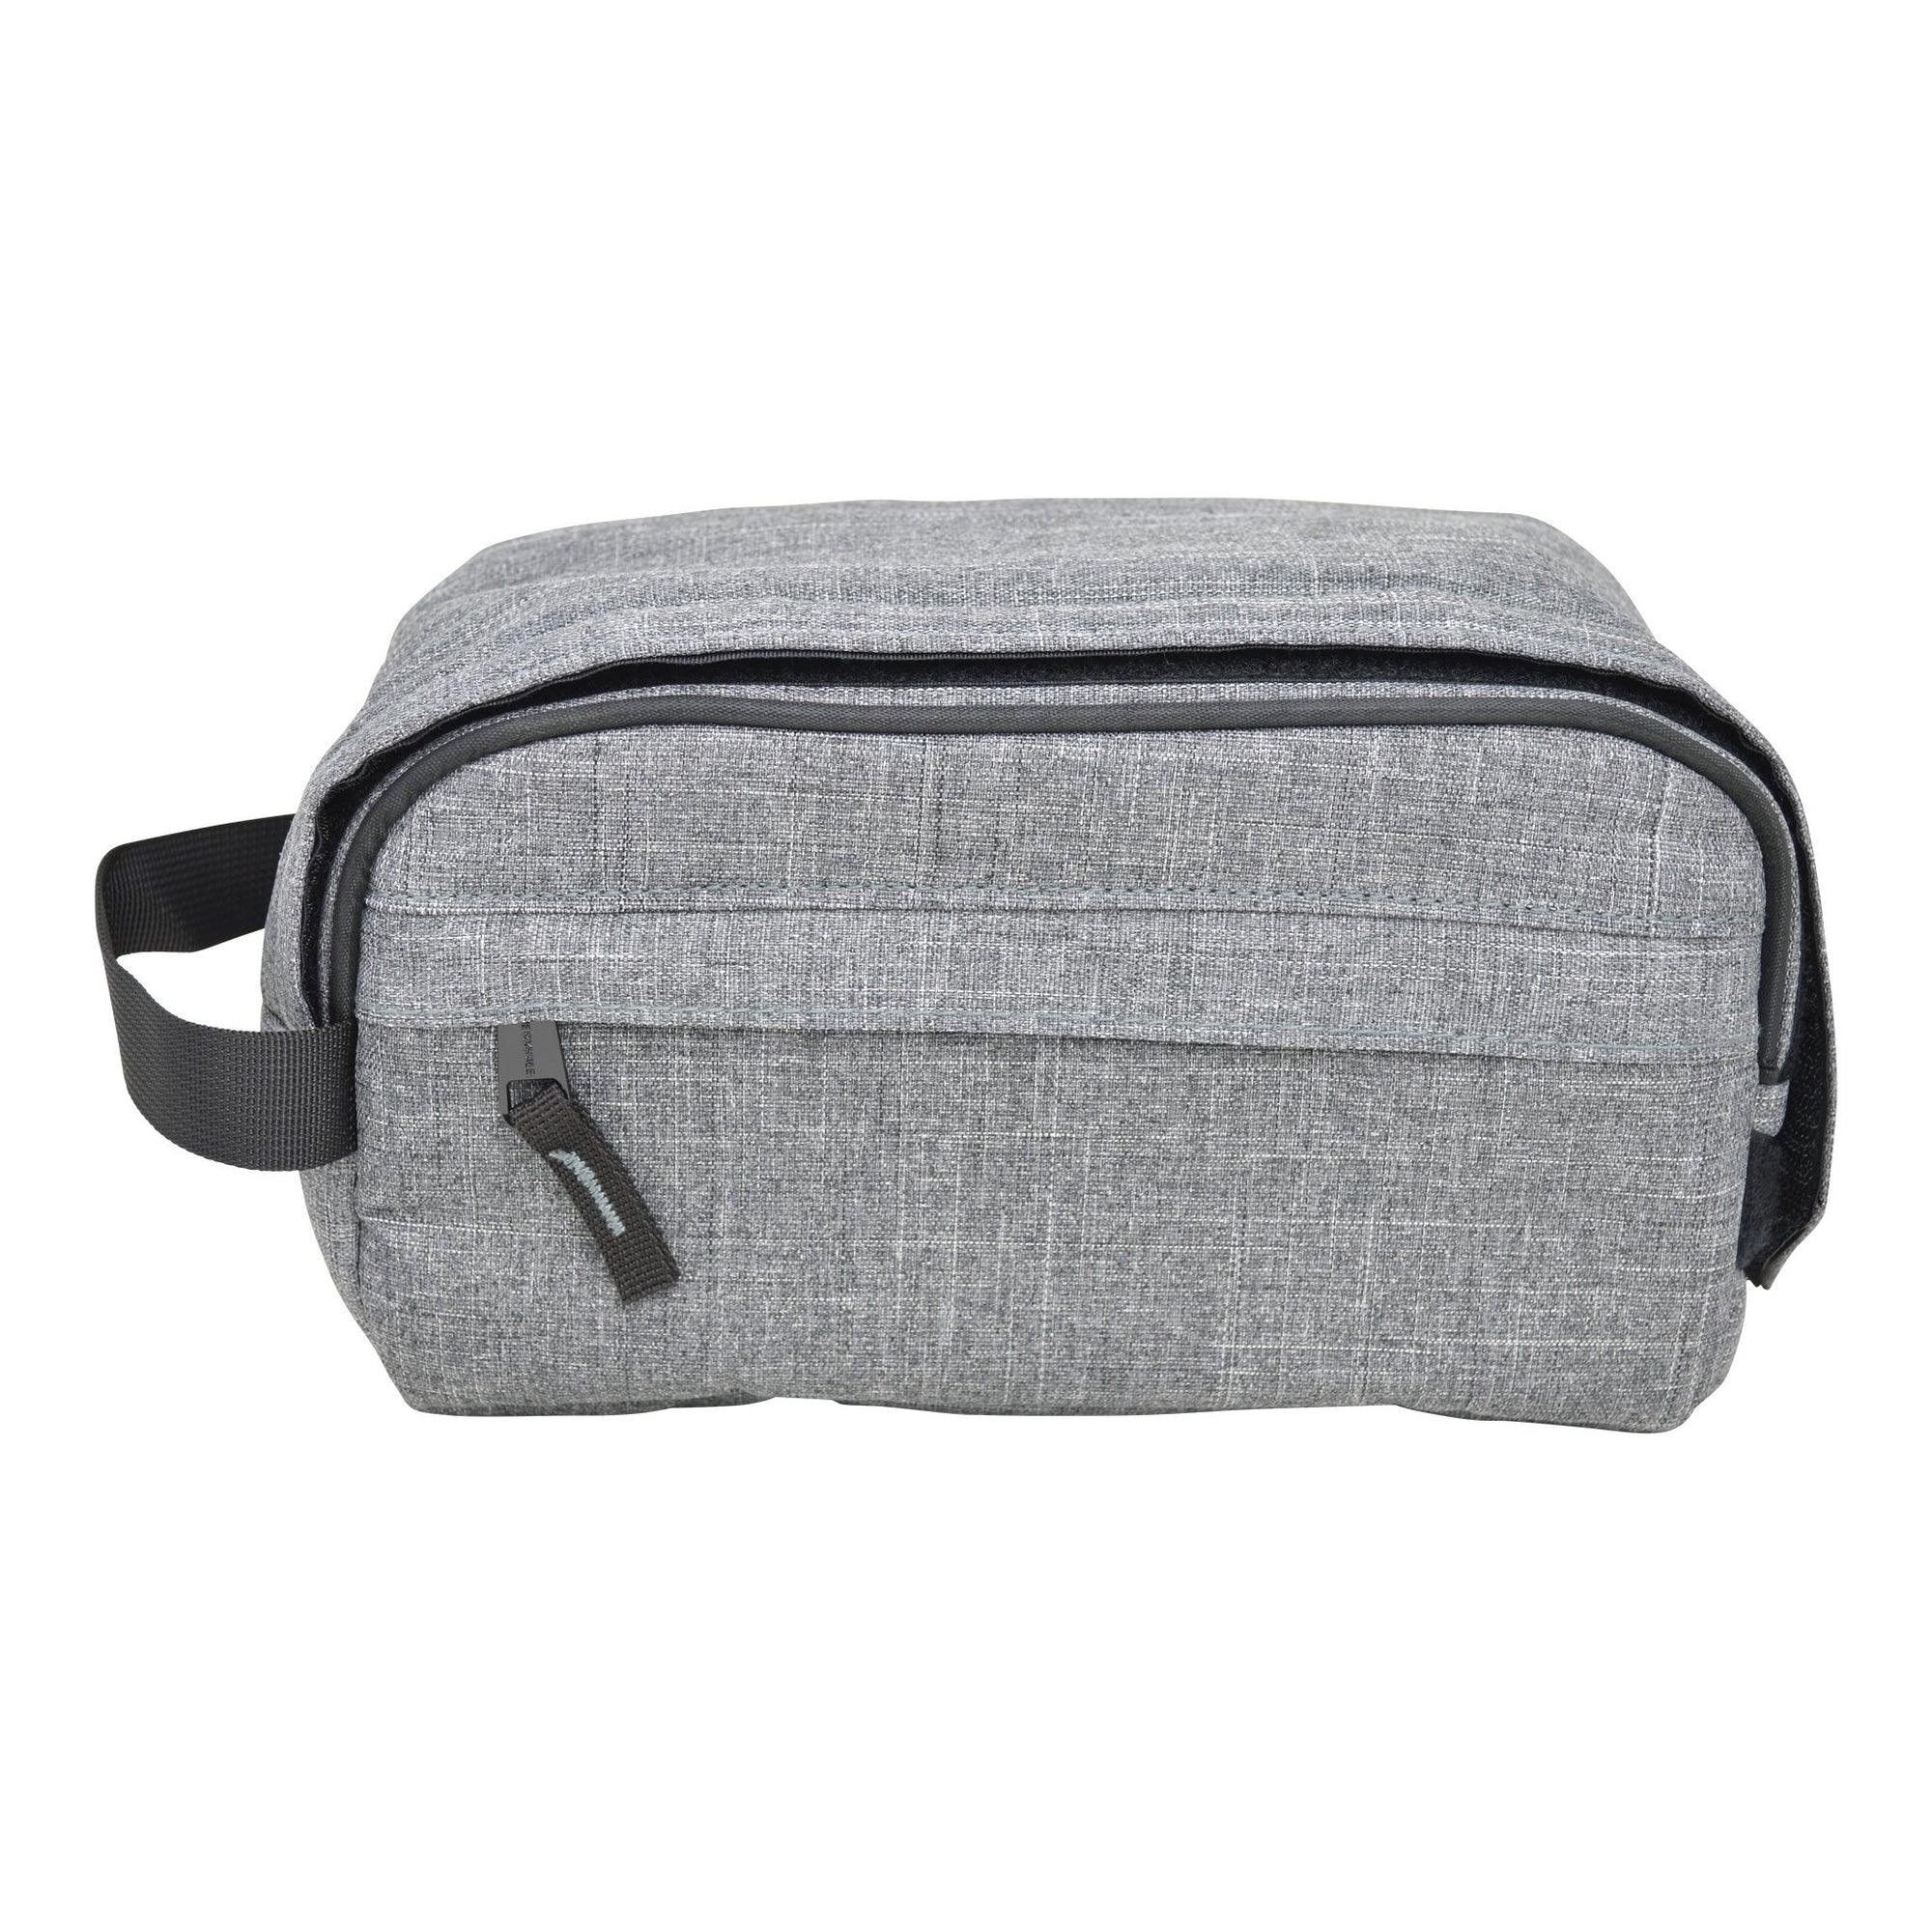 Front shot zipped 11 inch smell proof gray bag with black lining and black handle on left 1 front pocket with zipper